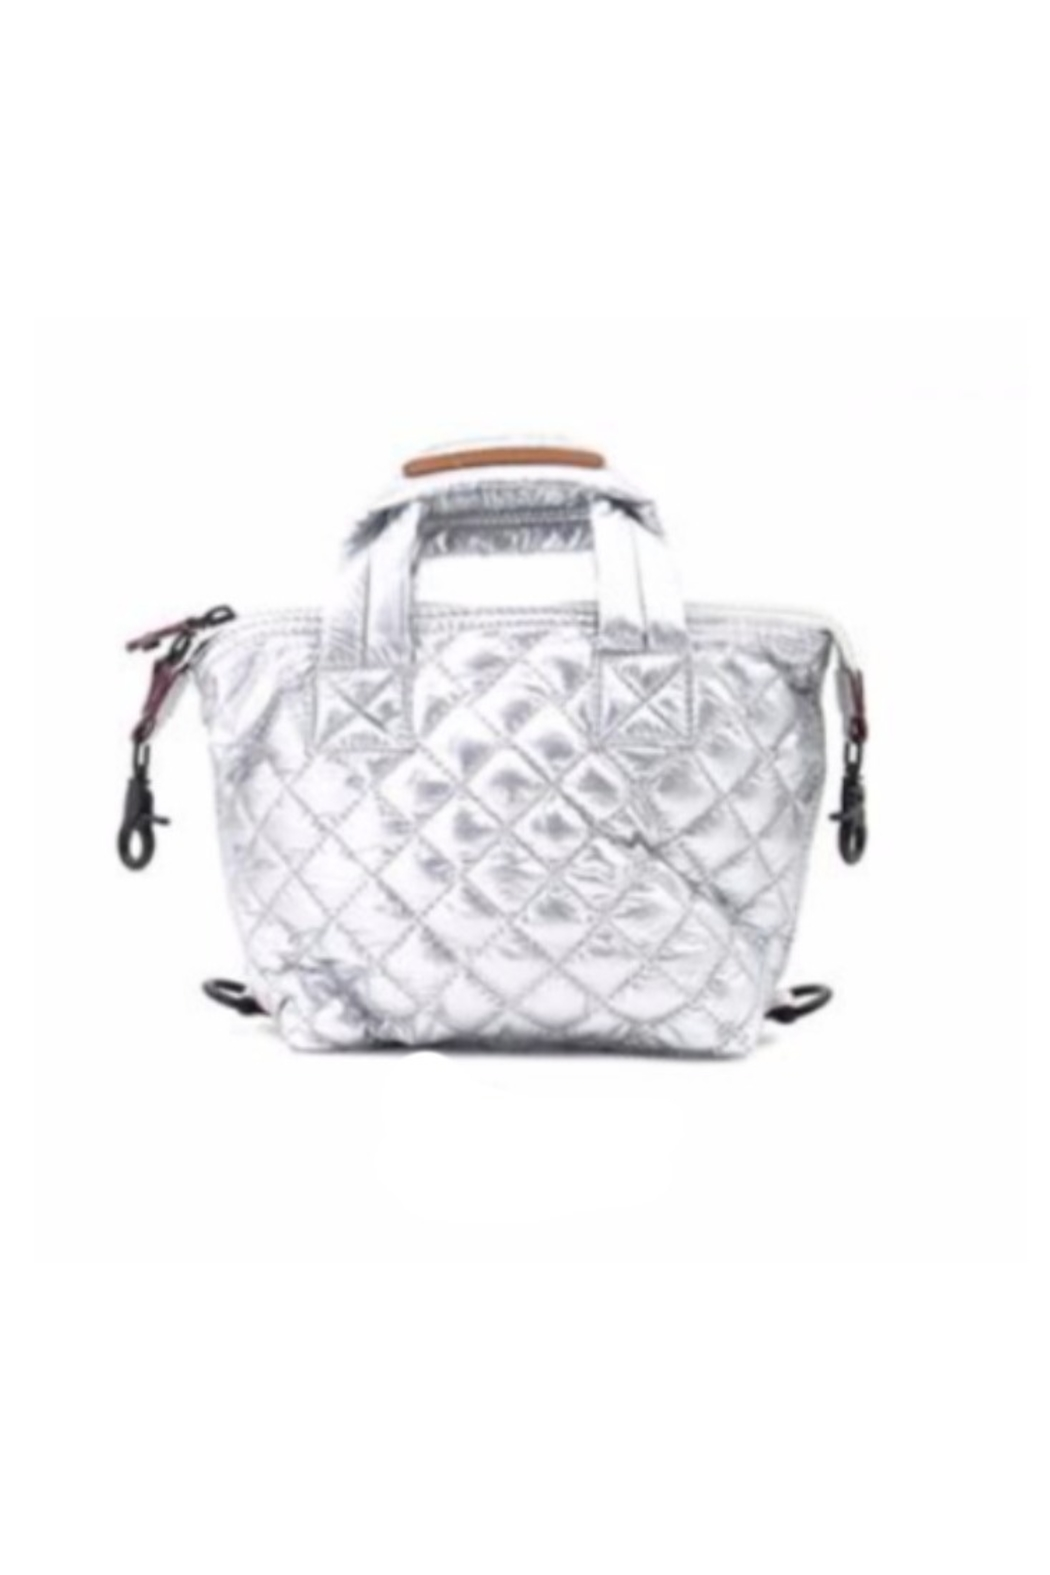 Allie & Chica Puffy Minibag in Silver - Main Image